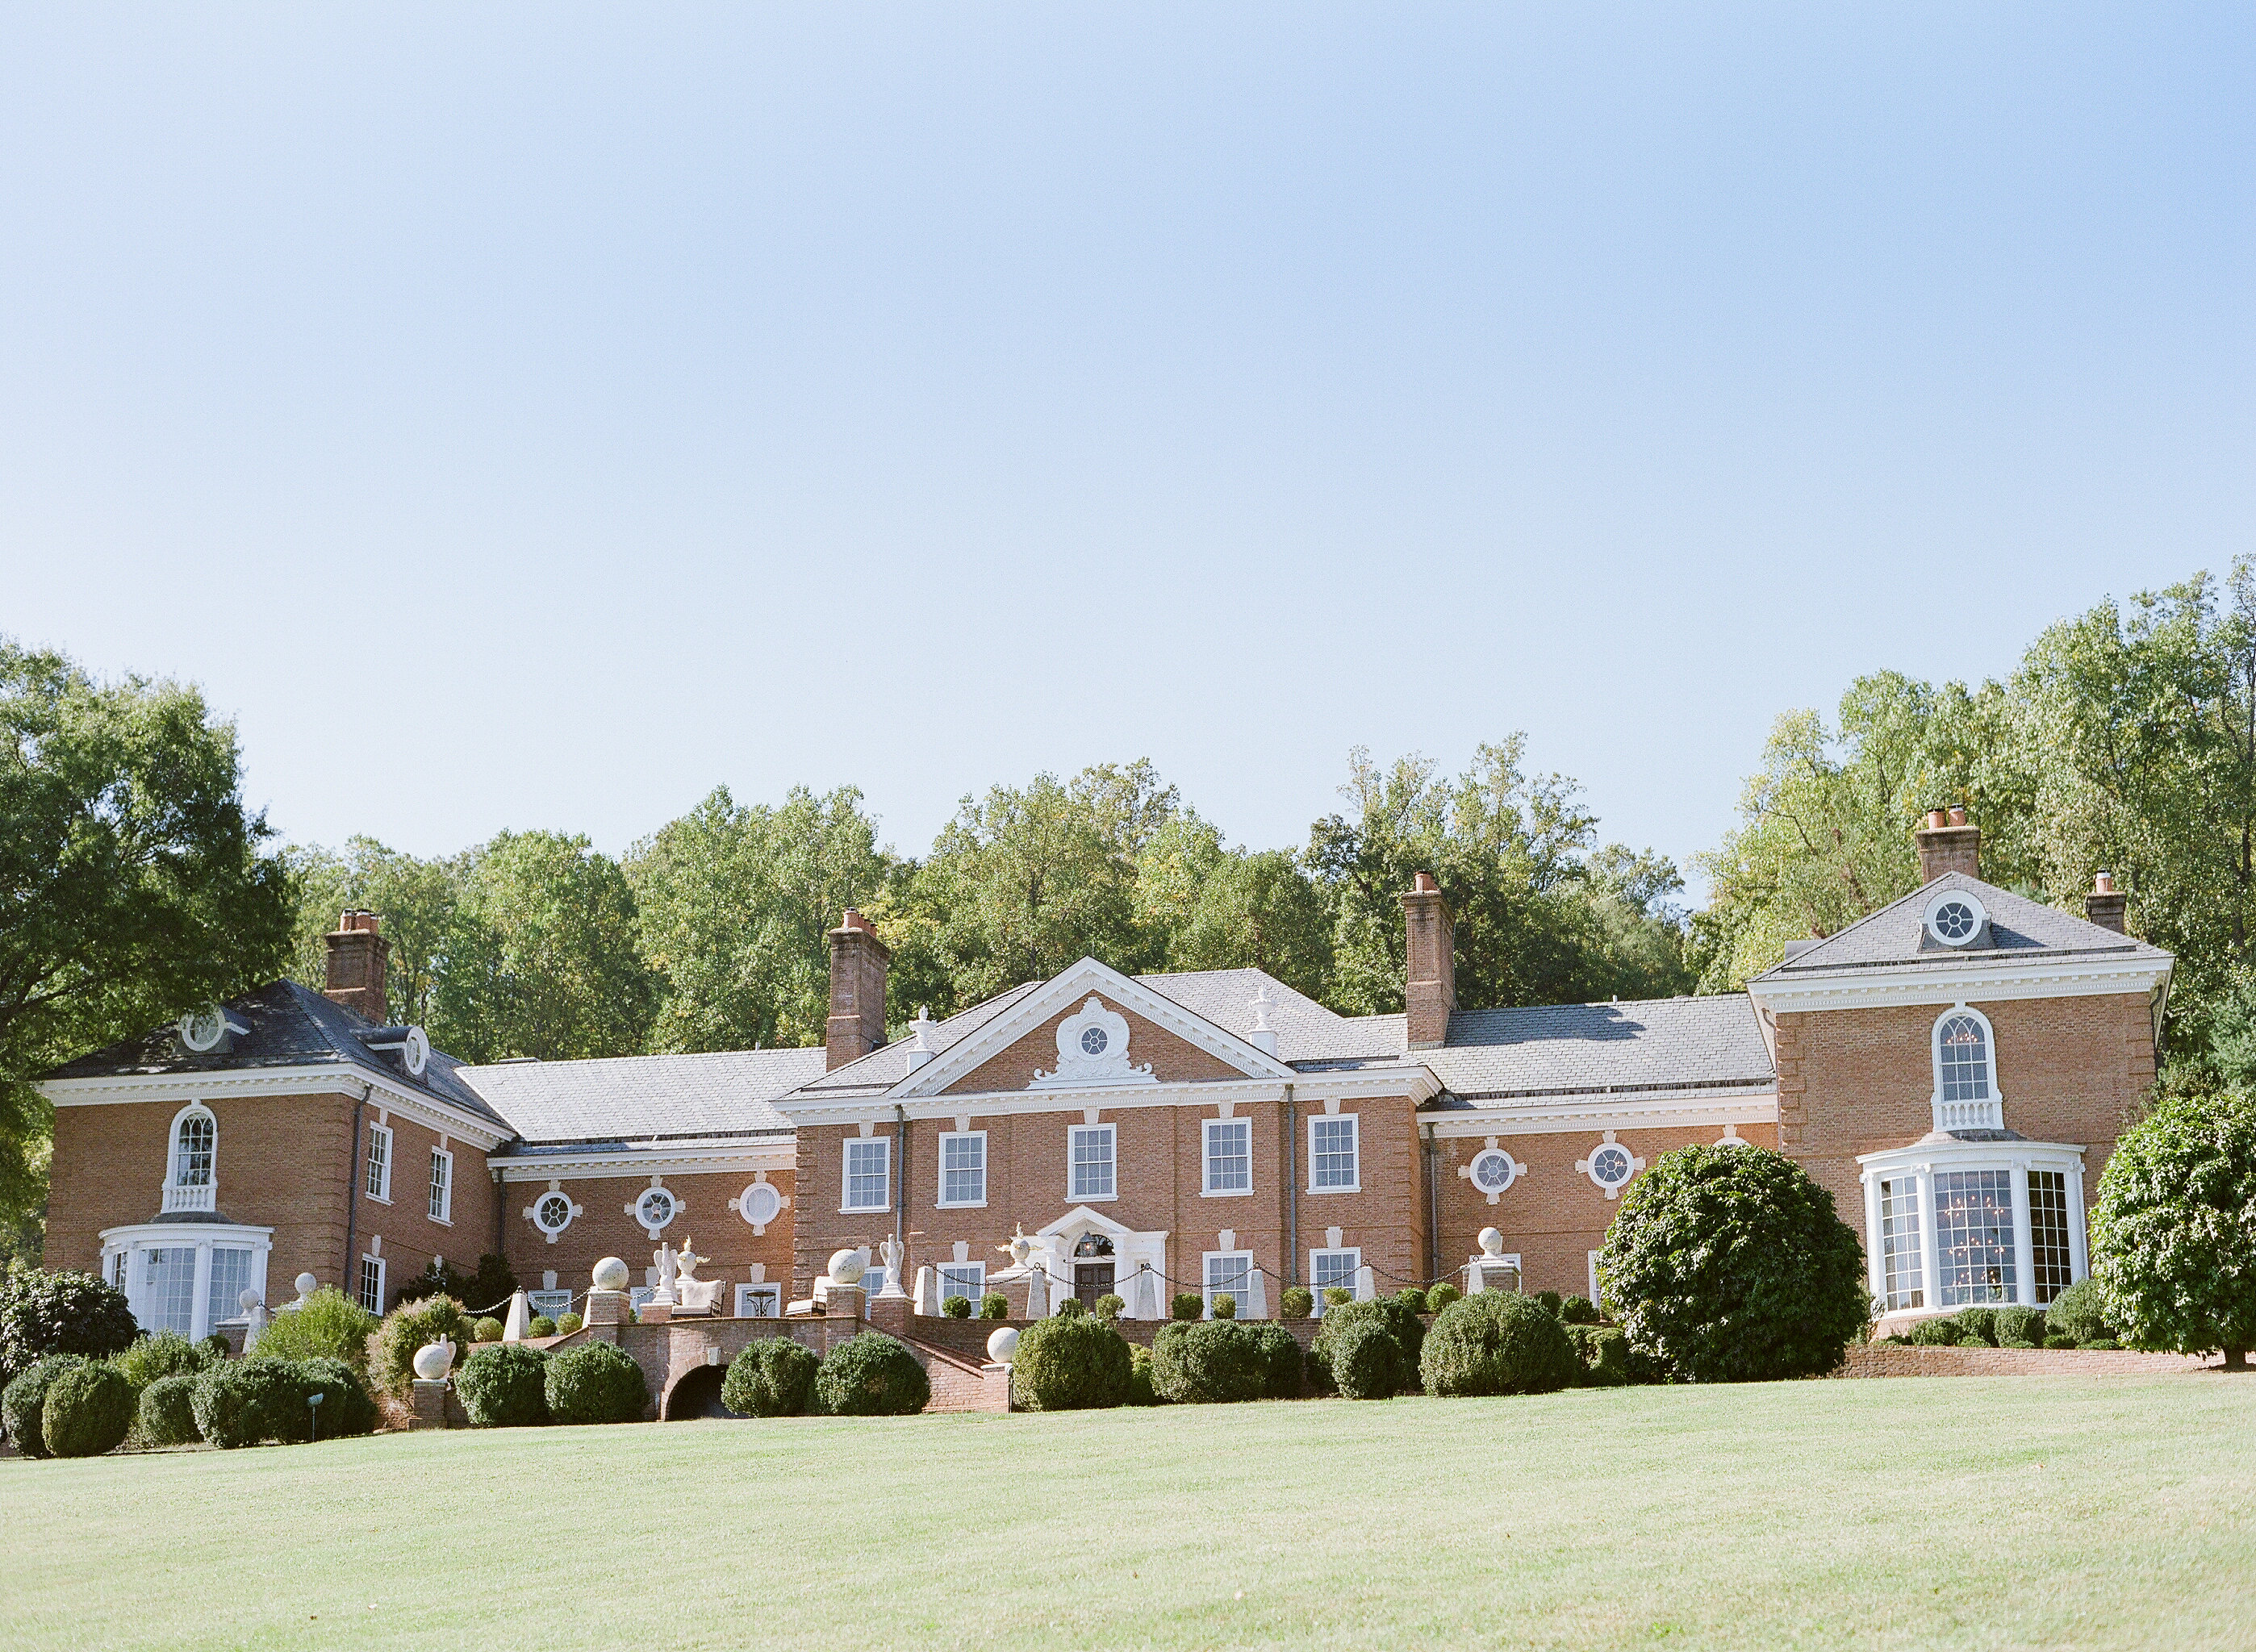 , Albemarle Estate At Trump Winery, AMERICAN ACADEMY OF HOSPITALITY SCIENCES